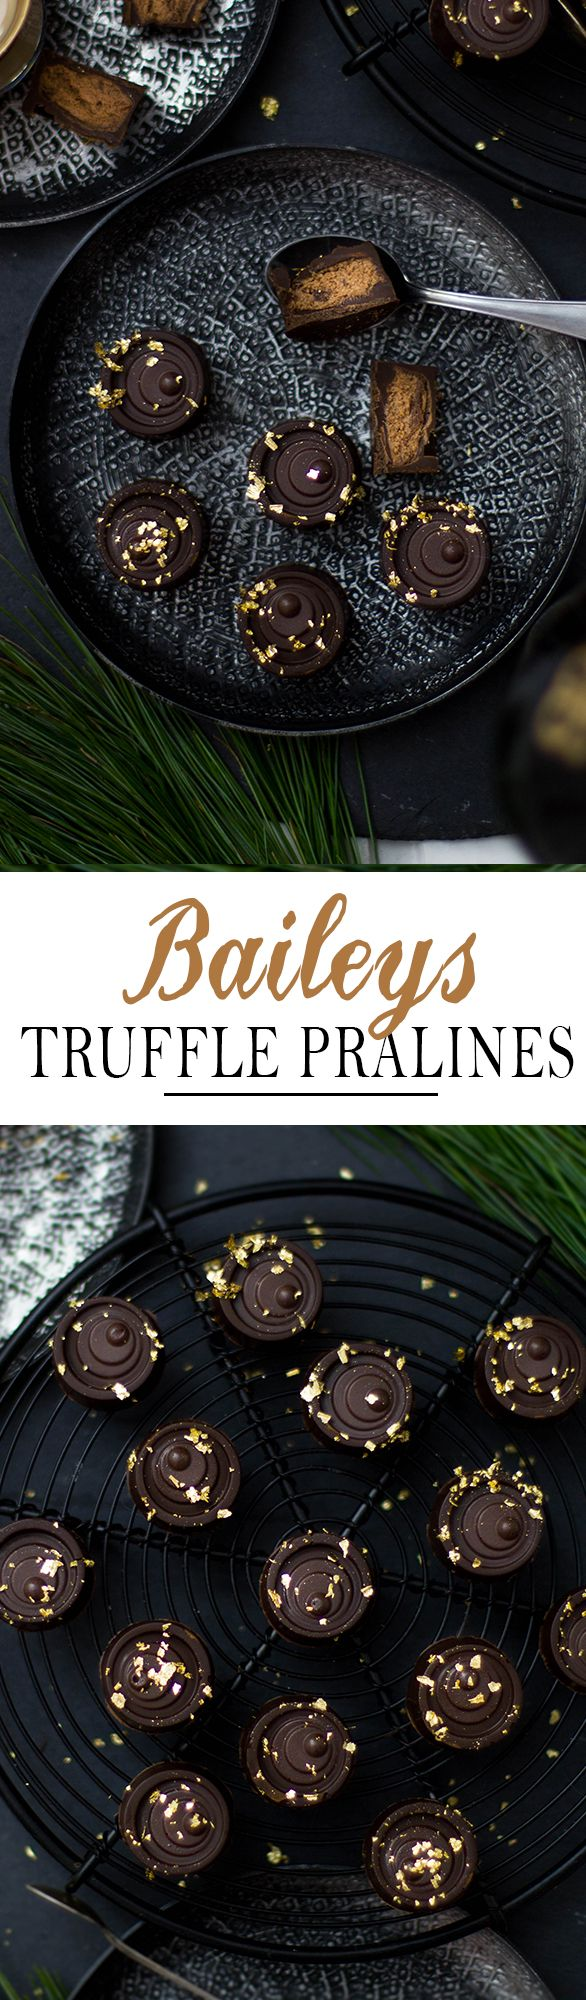 Baileys Truffle Pralines with semi sweet chocolate and gold. Perfect gift for christmas | Baileys Trüffel Pralinen mit Zartbitterschokolade und Blattgold. Perfektes Geschenk aus der Küche zu Weihnachten